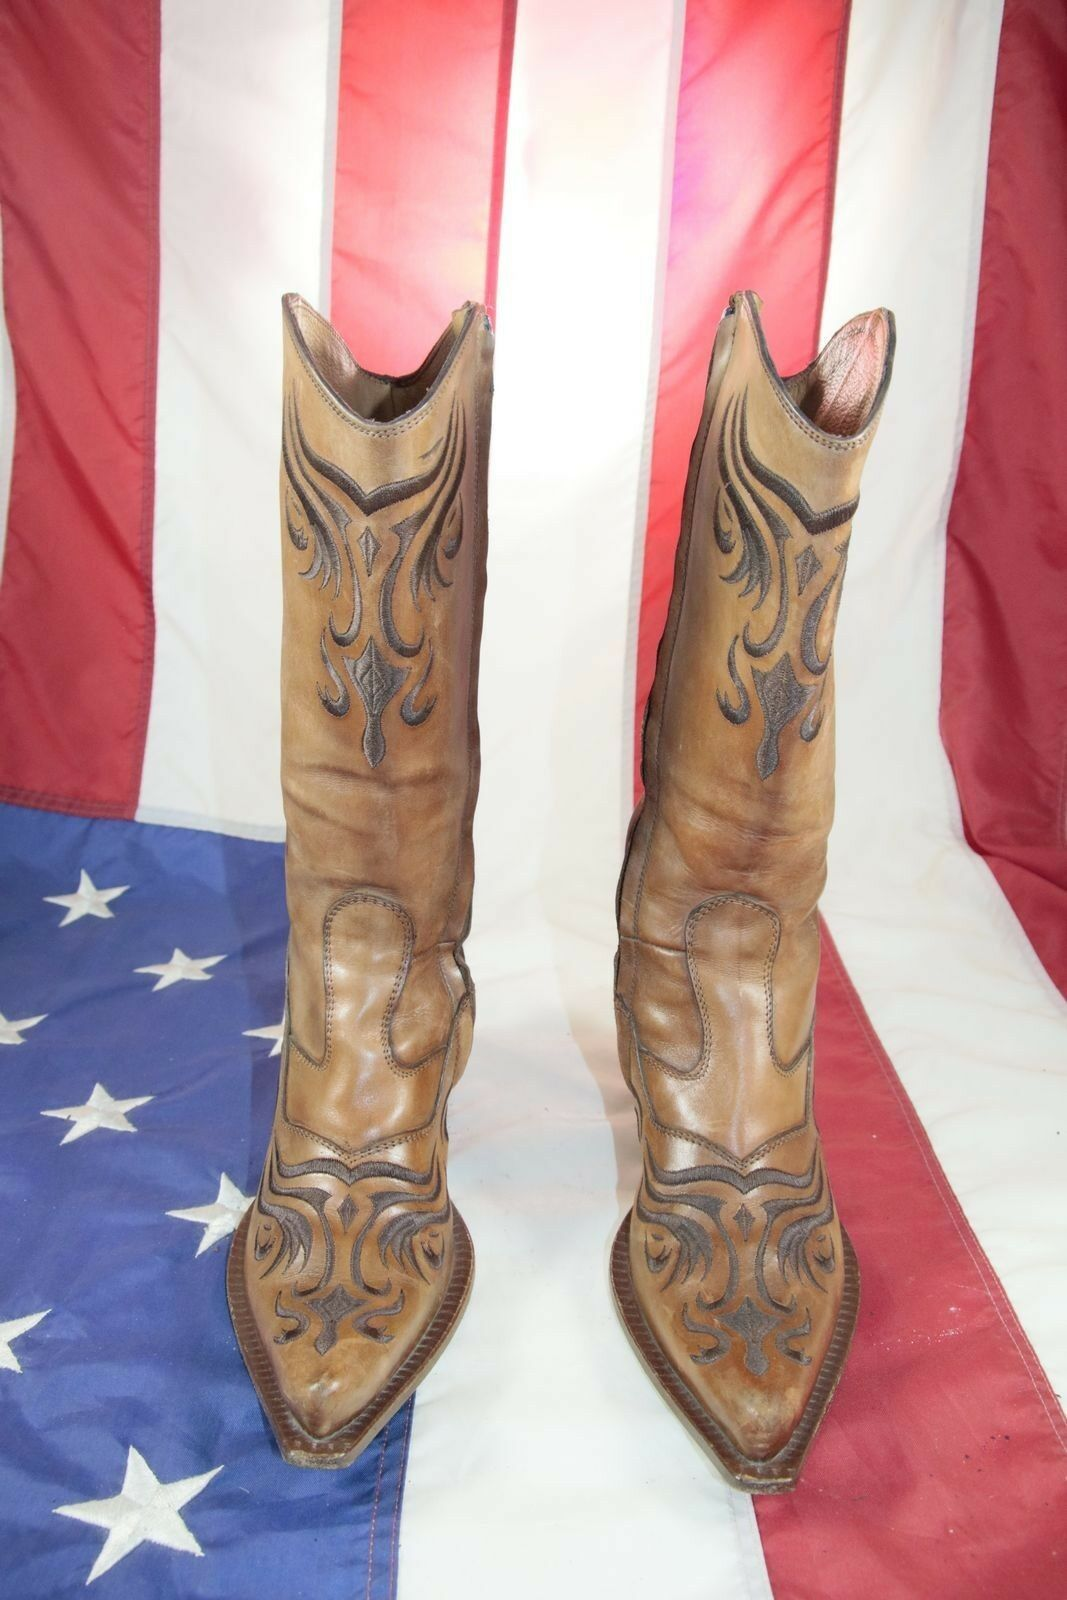 Bottes Cod.ST1634 d'occassion N.37 cuir marron Femme Cow-boy Country vintage